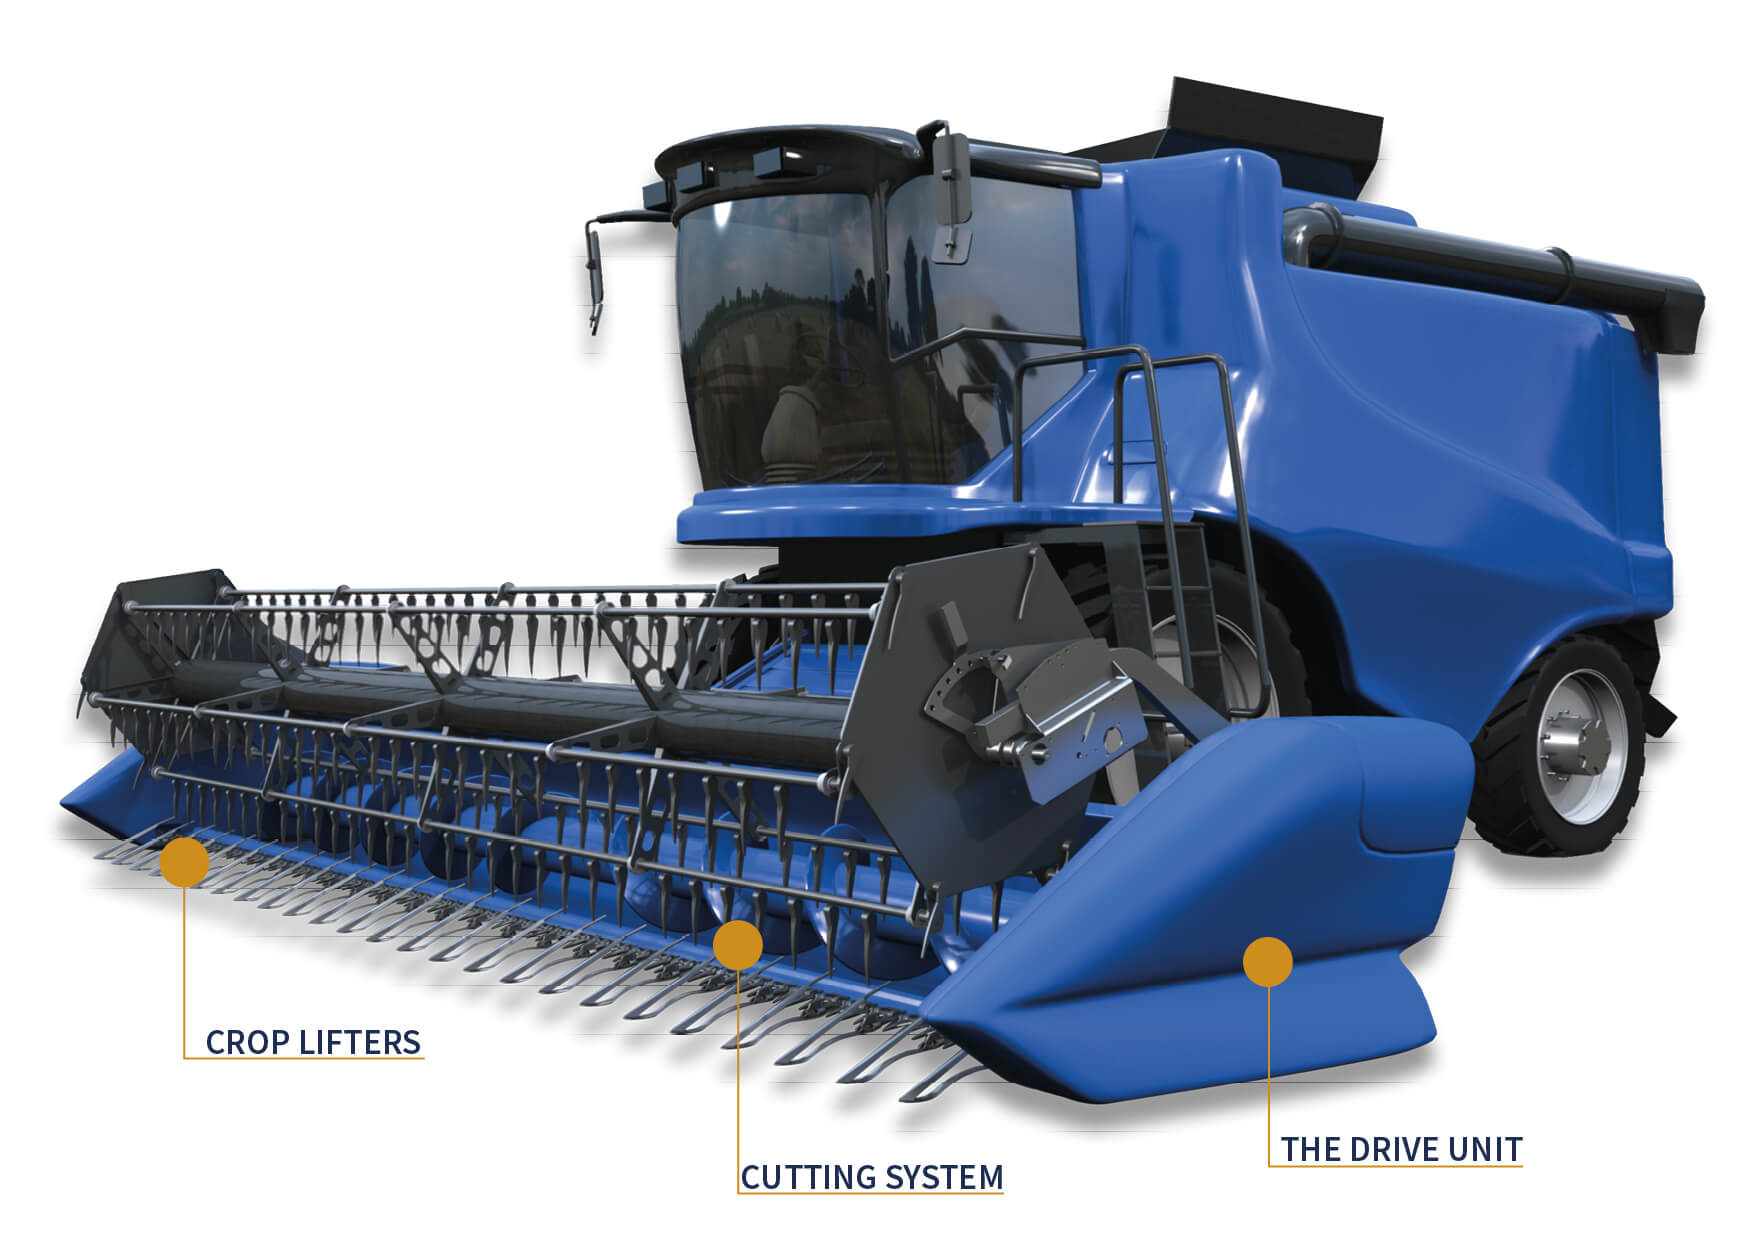 Group Schumacher combine harvester graphic with lettering